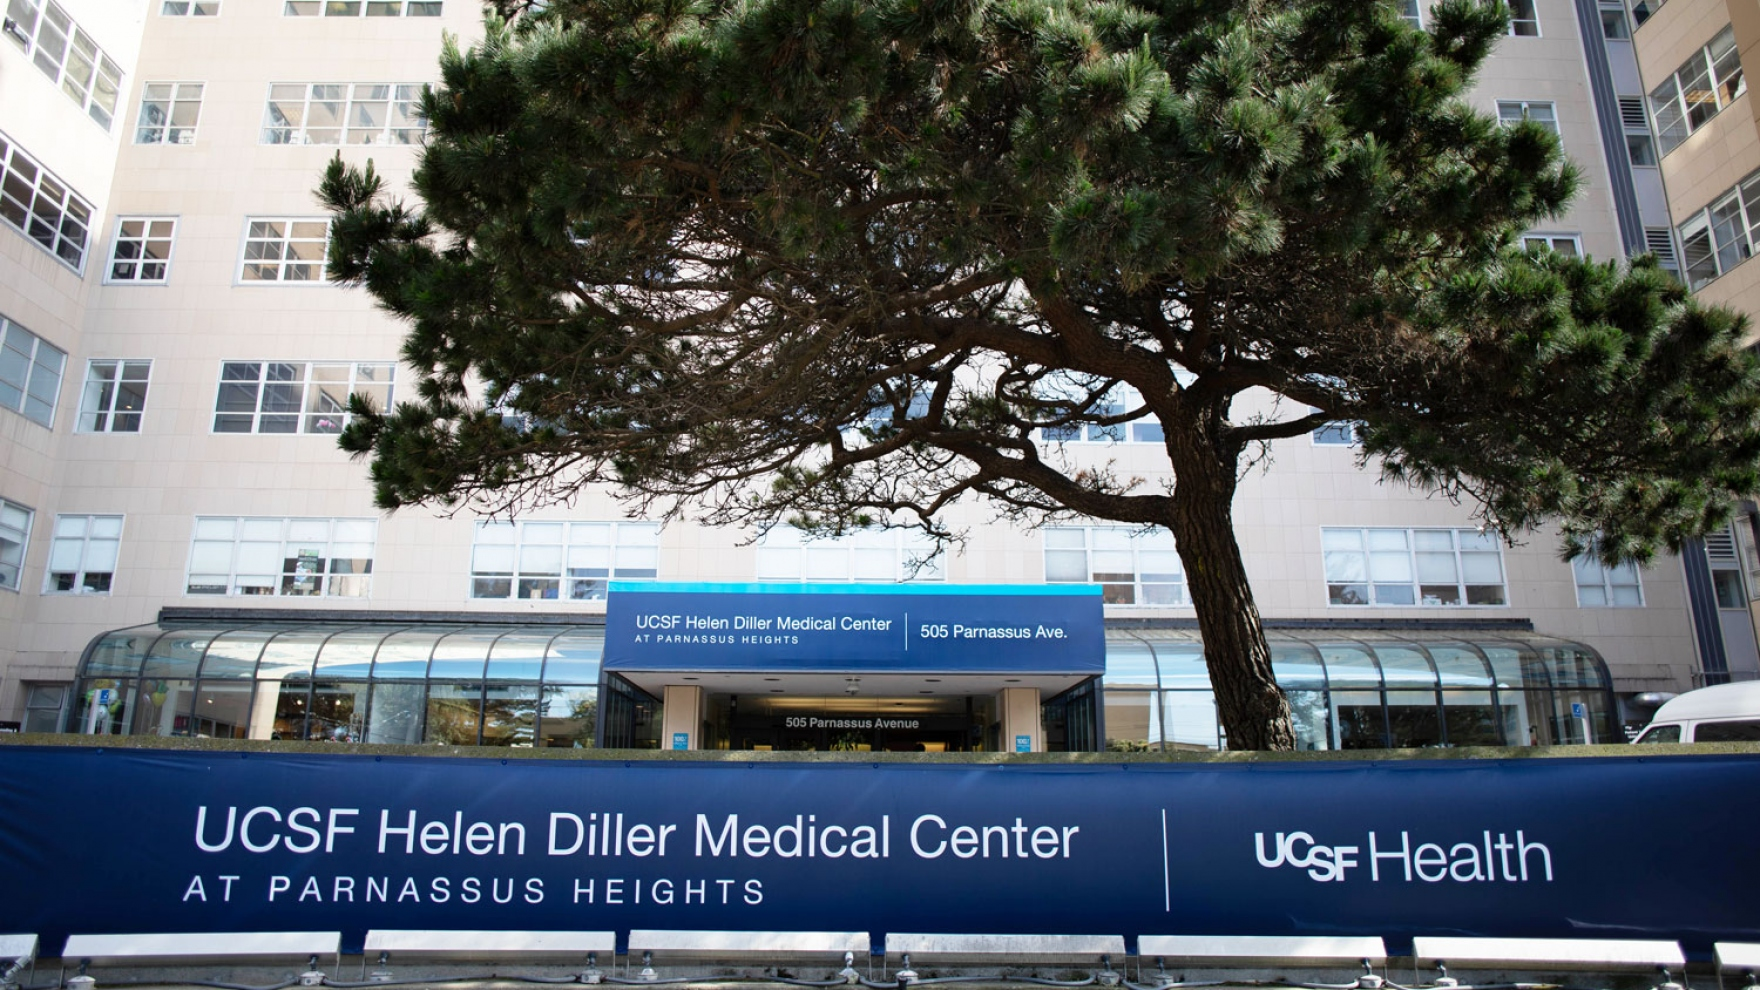 exterior of UCSF Helen Diller Medical Center at Parnassus